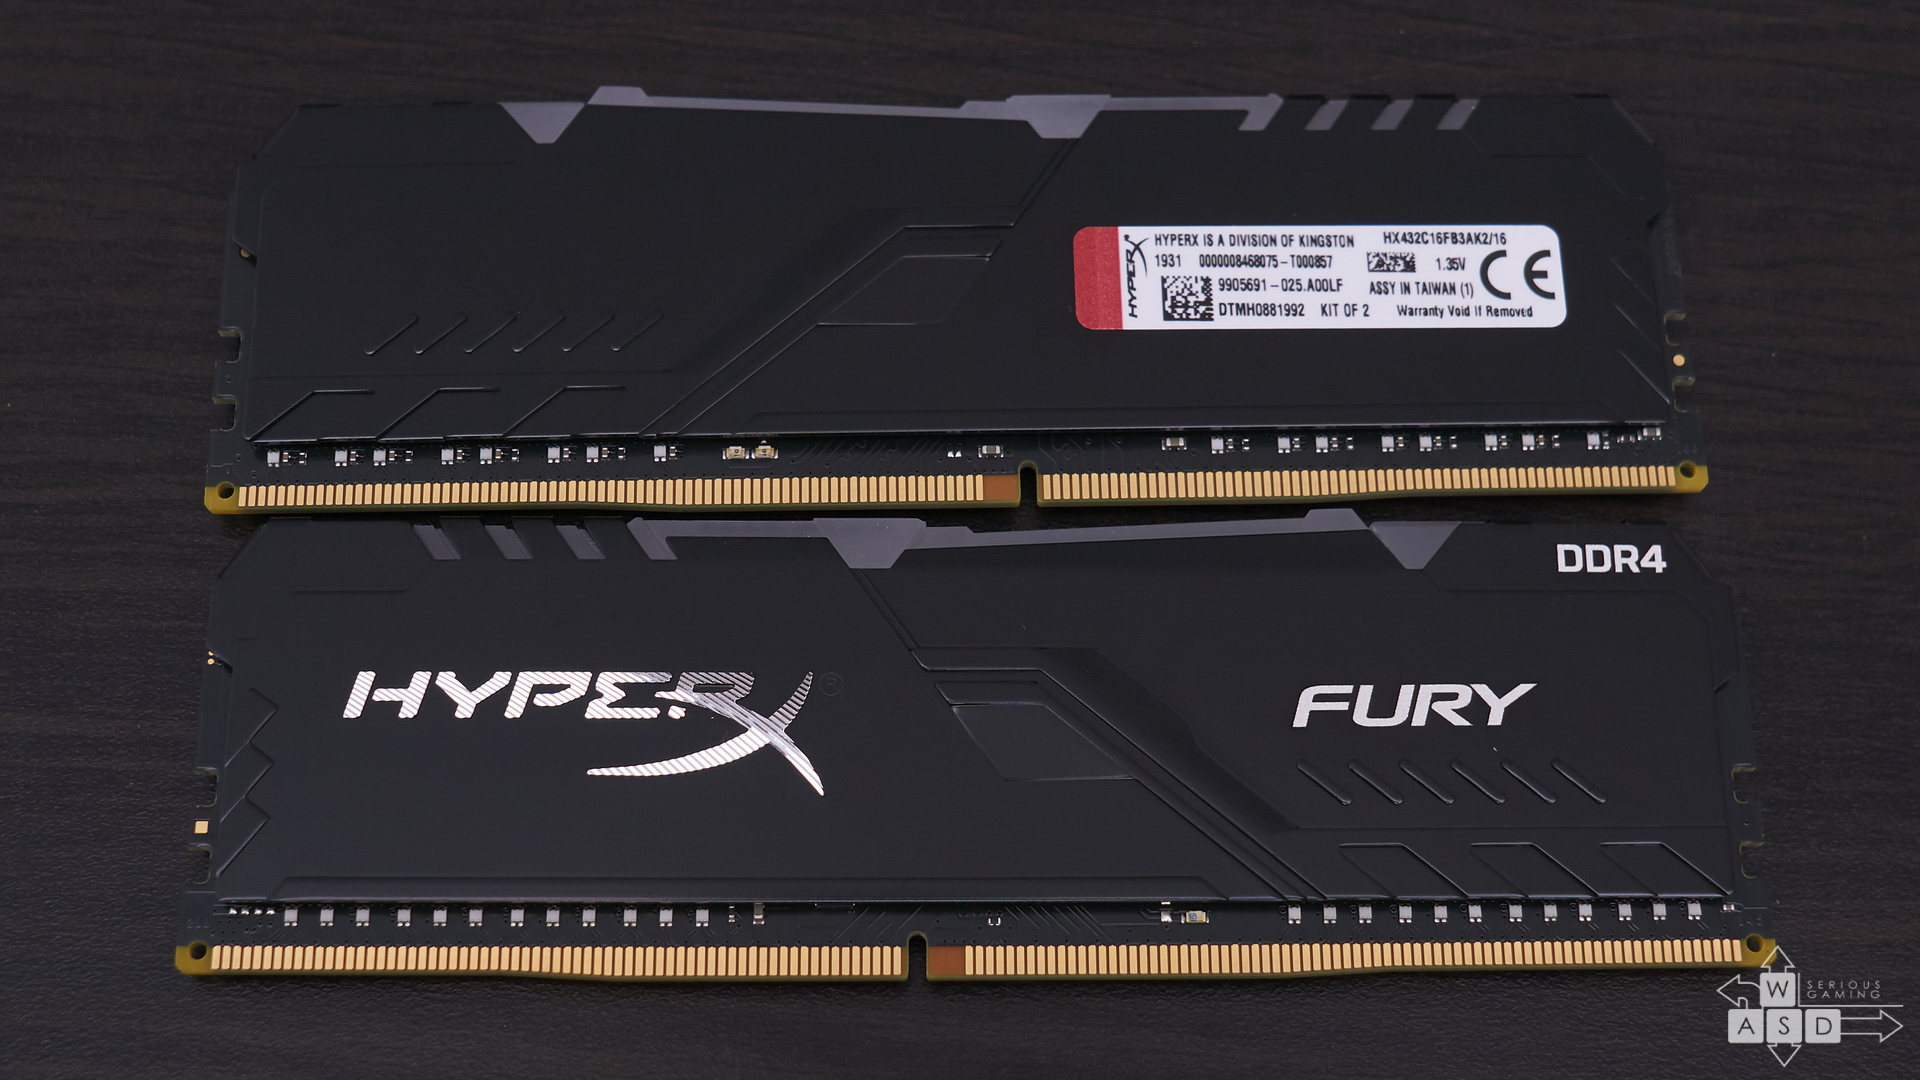 HyperX FURY DDR4 RGB Memory 16GB review | WASD